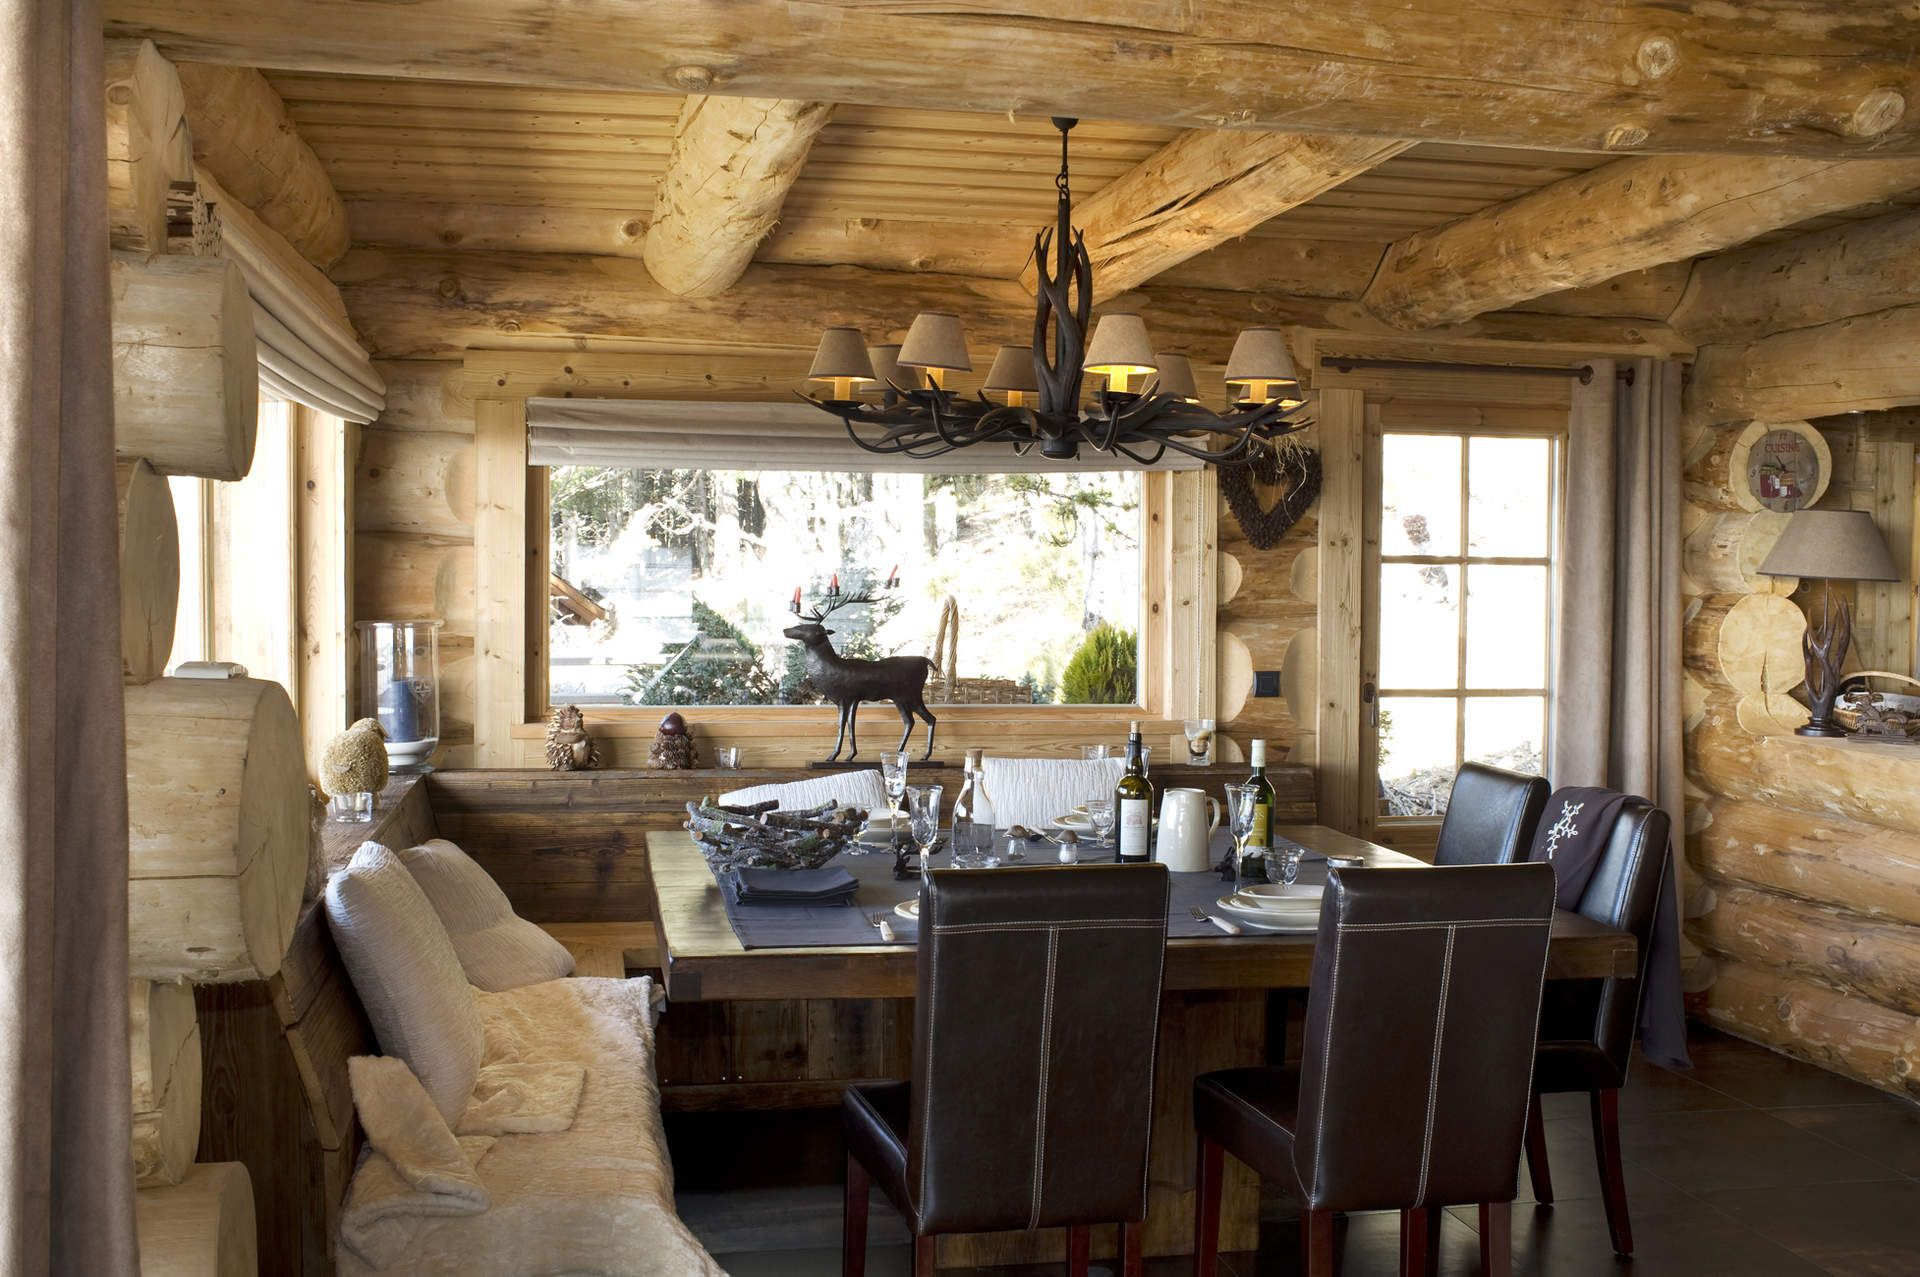 Chalets, Alsace and Cuisine on Pinterest